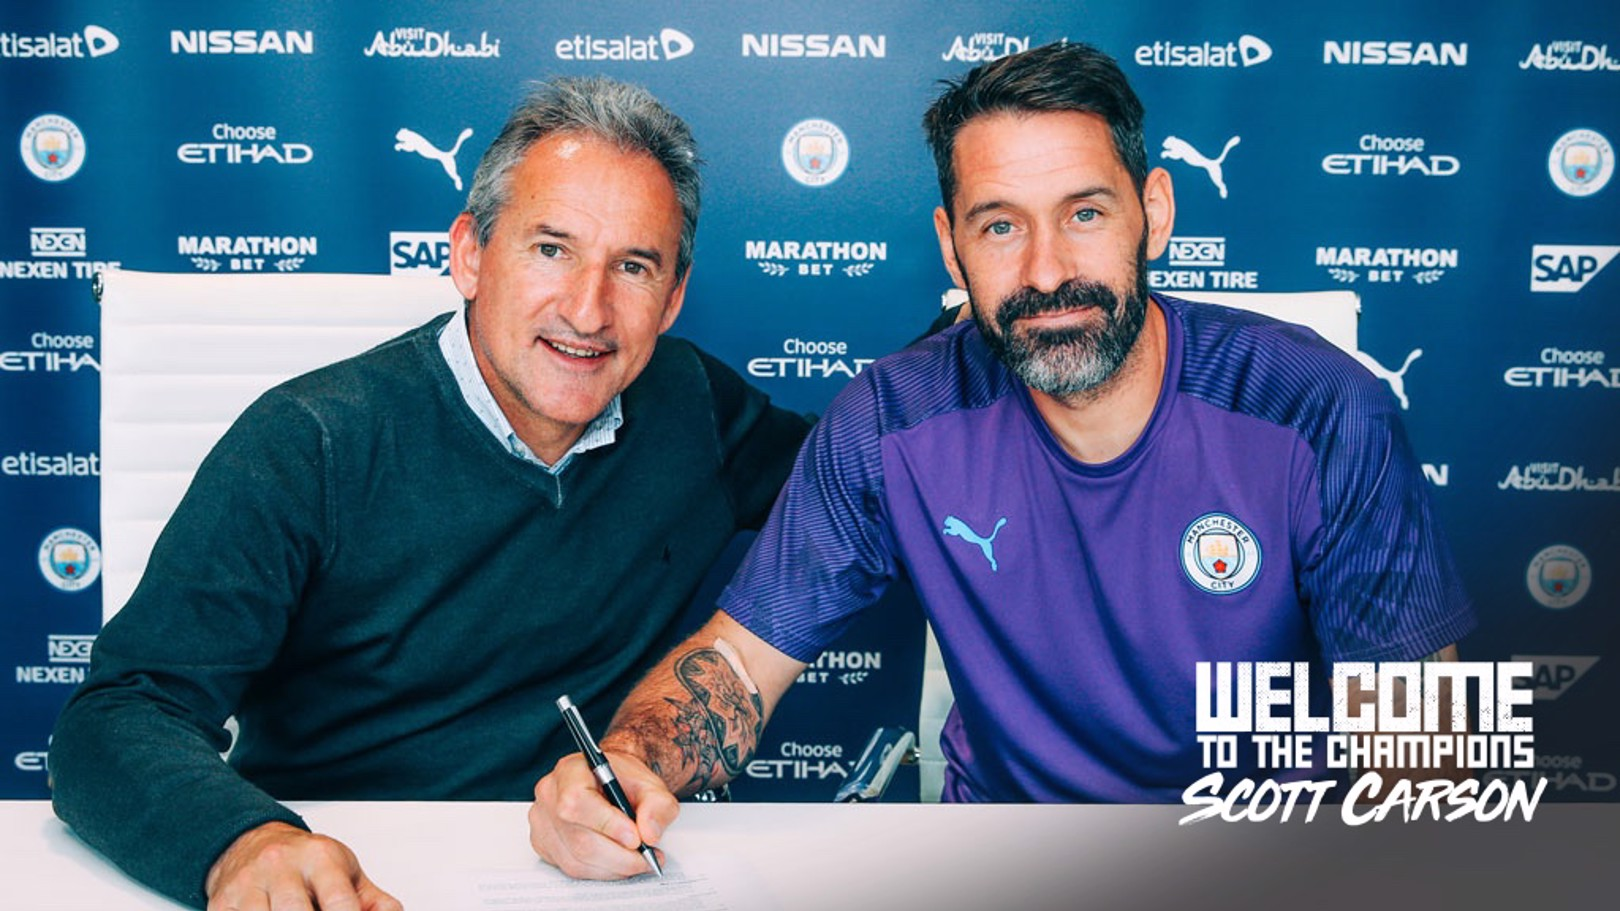 DEADLINE DAY: Welcome, Scott Carson!